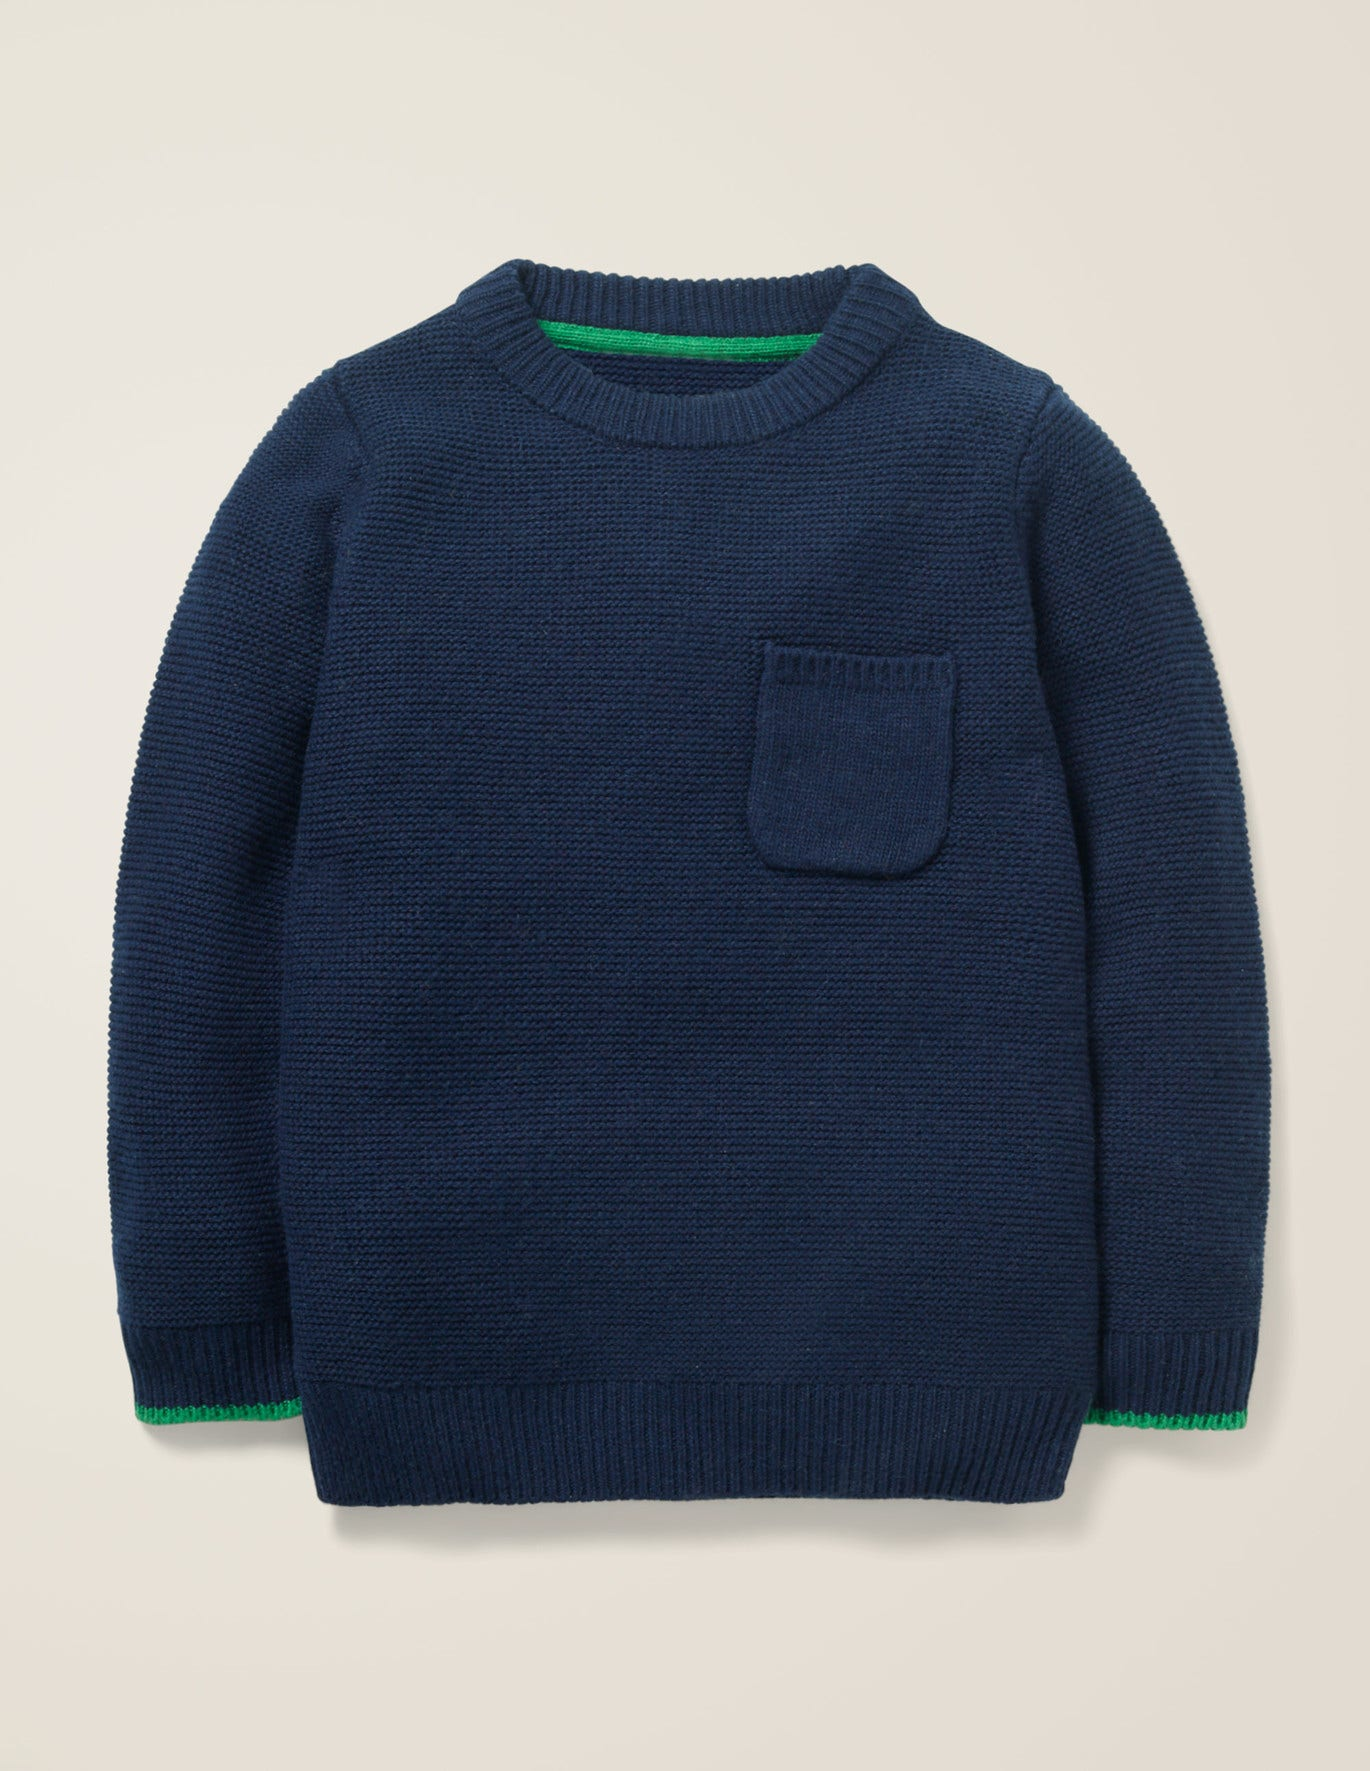 Essential Crew Sweater by Boden